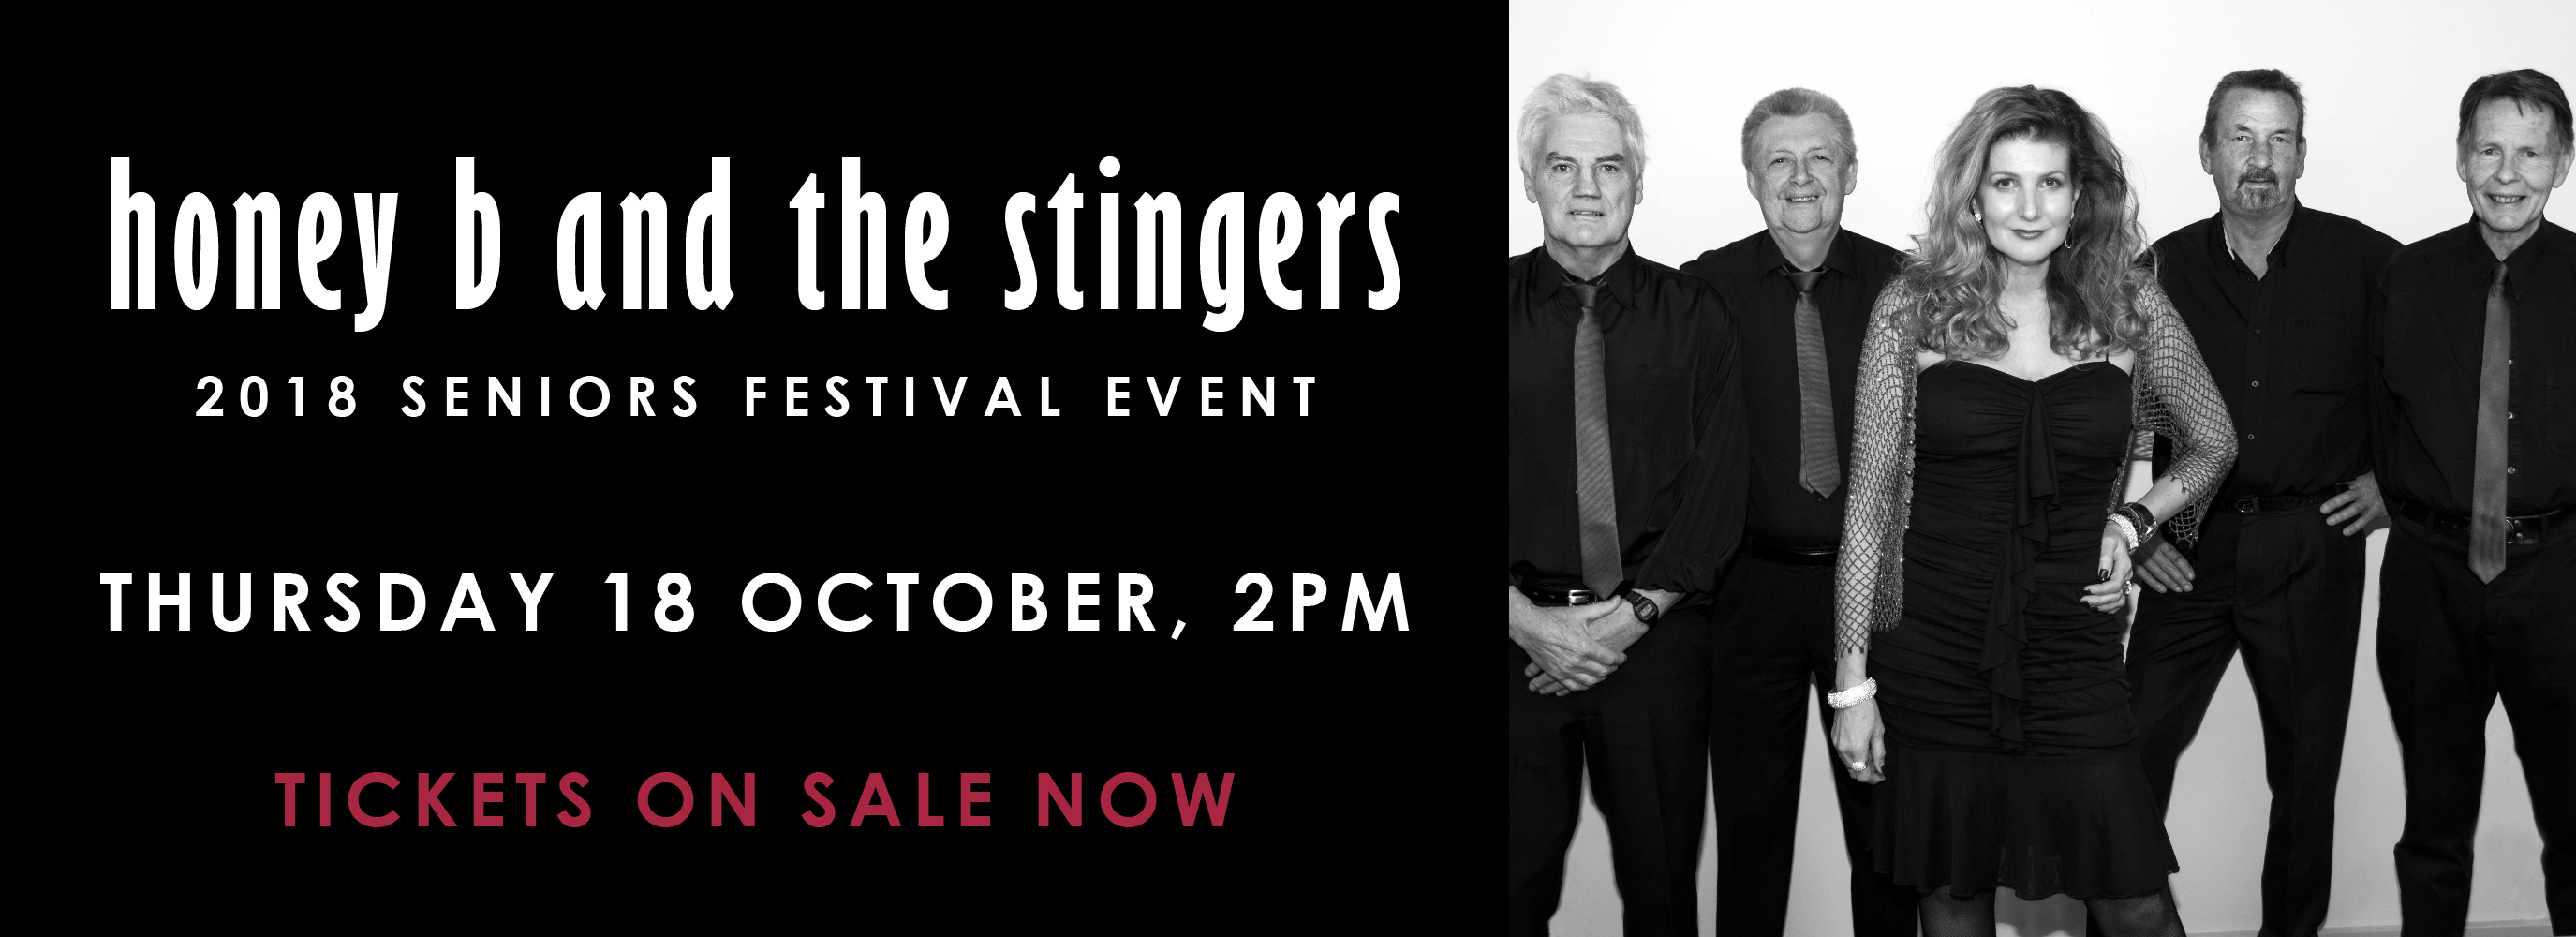 Honey B and the Stingers, Thursday 18 October, 2pm